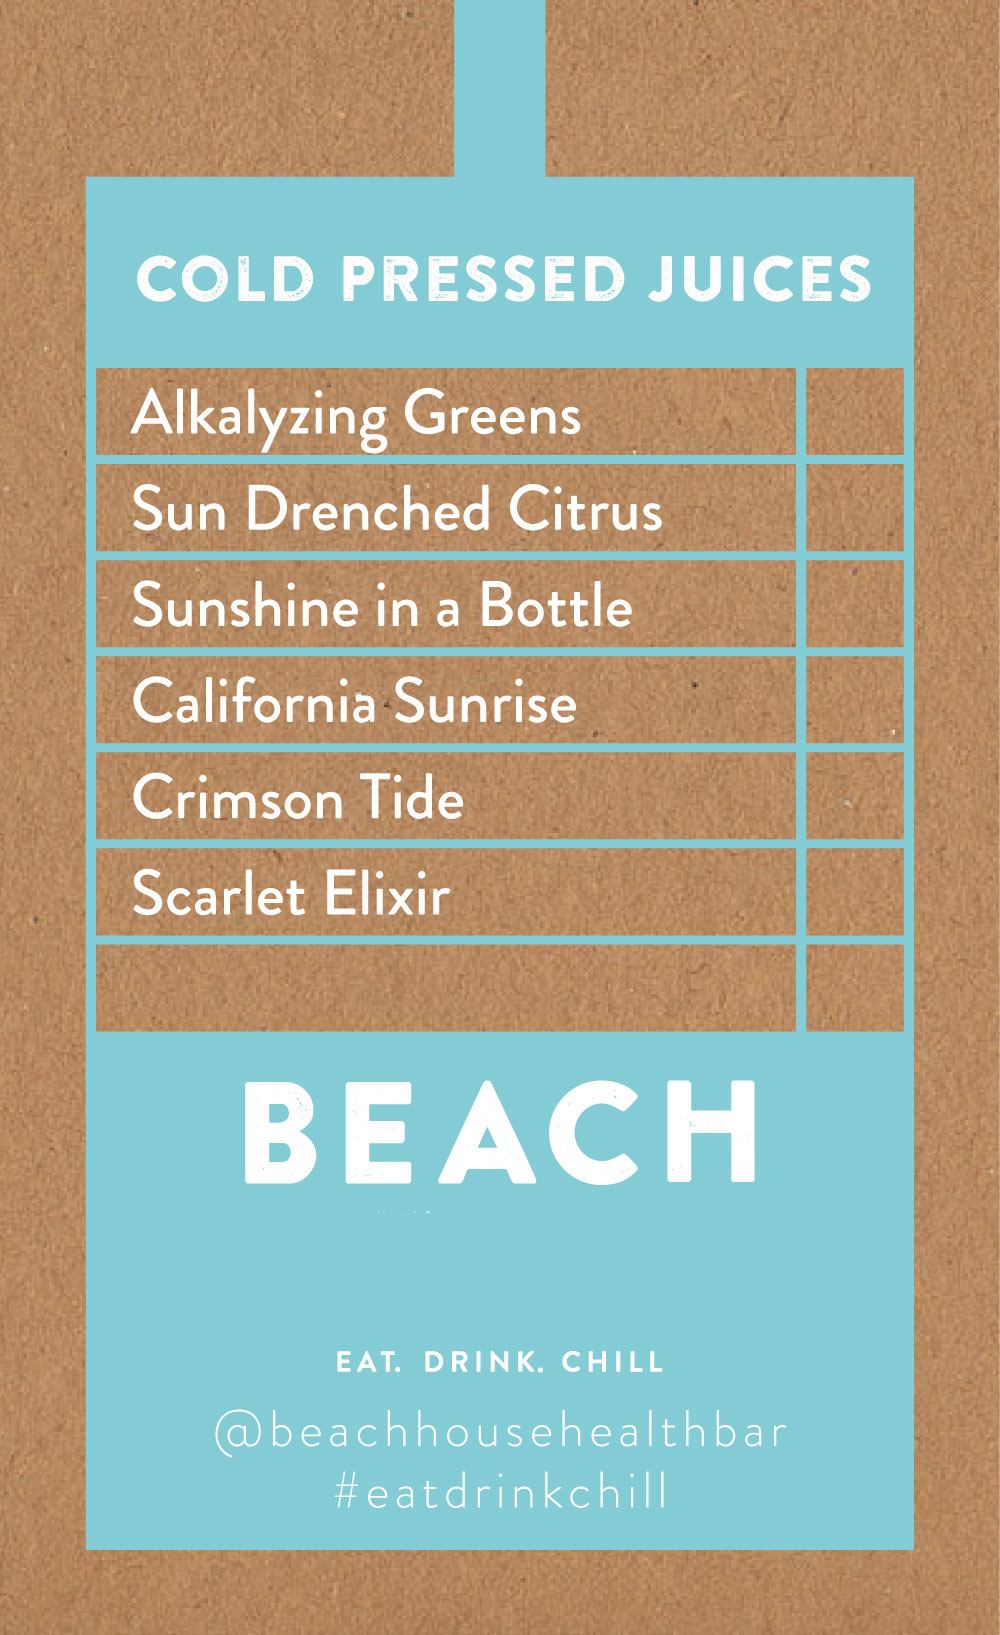 201504-002_SIGNAGE_POS_BottleTags_BeachHouse_90x55mm_1